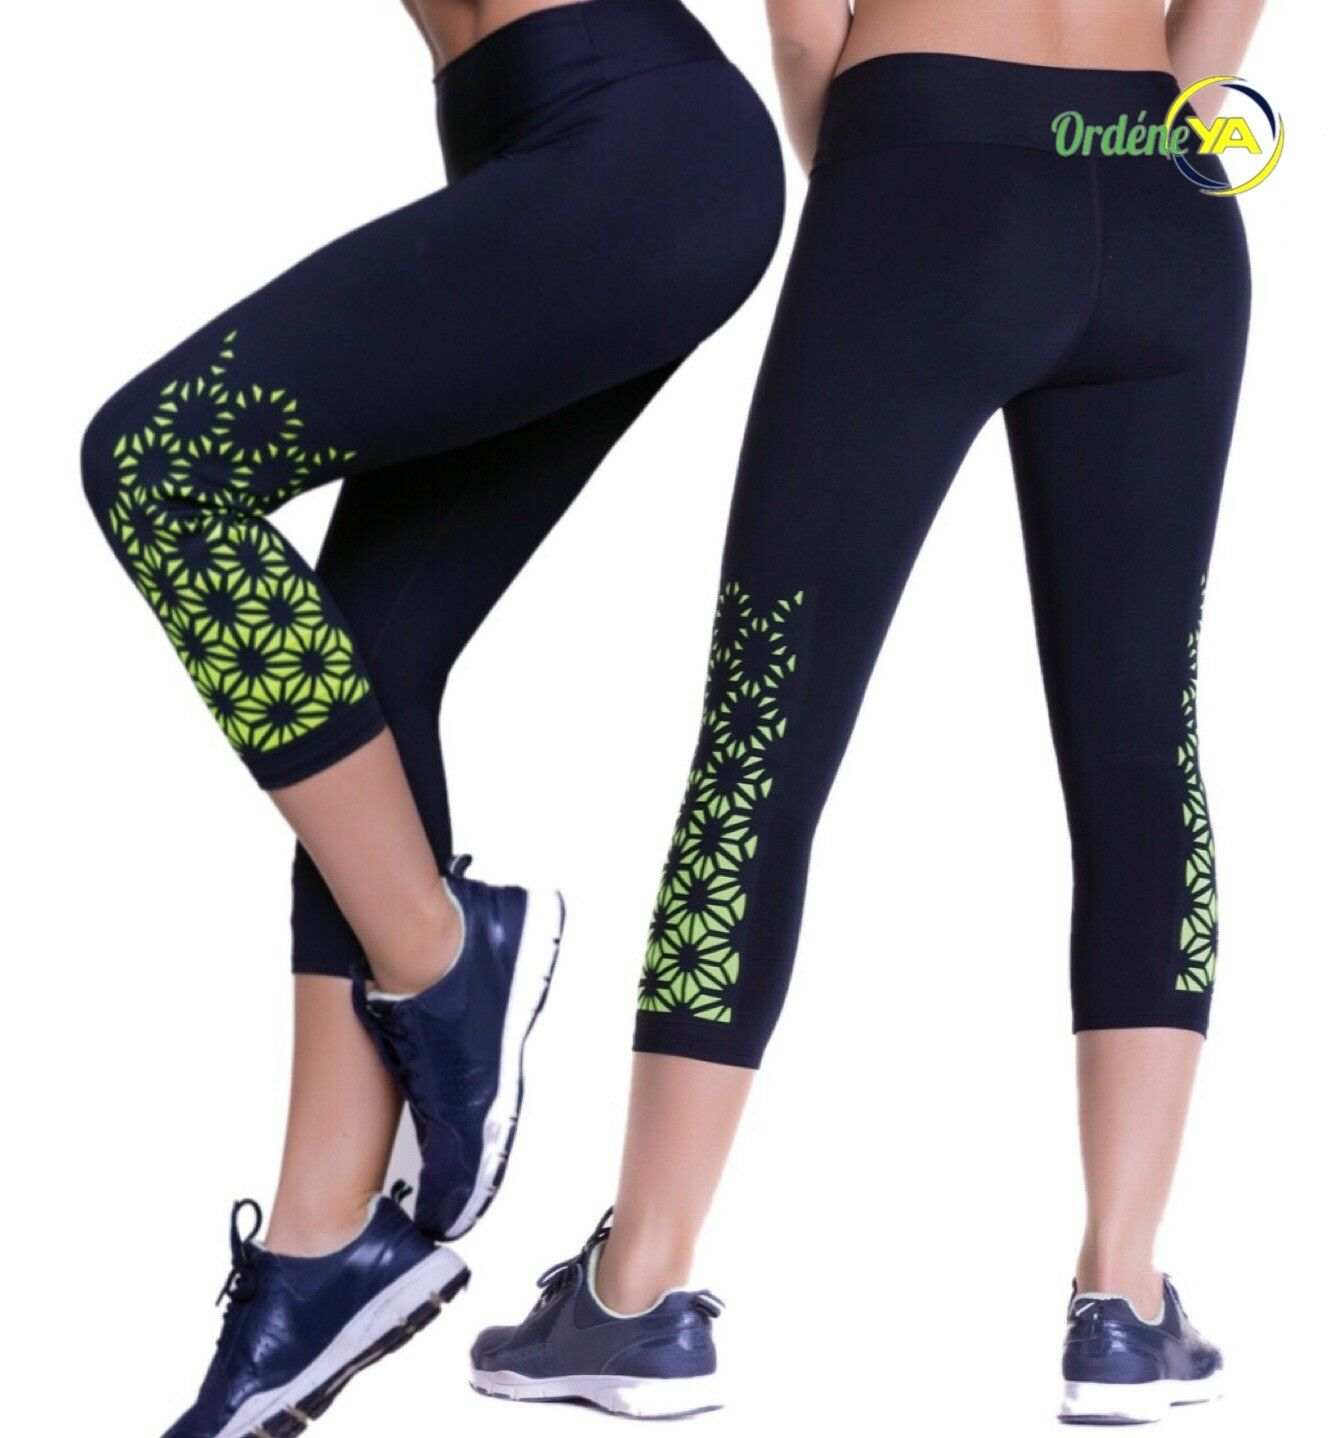 LEGGINGS DAILY BASIC MEDIAS CONTROL SLIM CROP WORKOUT YOGA  PANTS COLOMBIANO